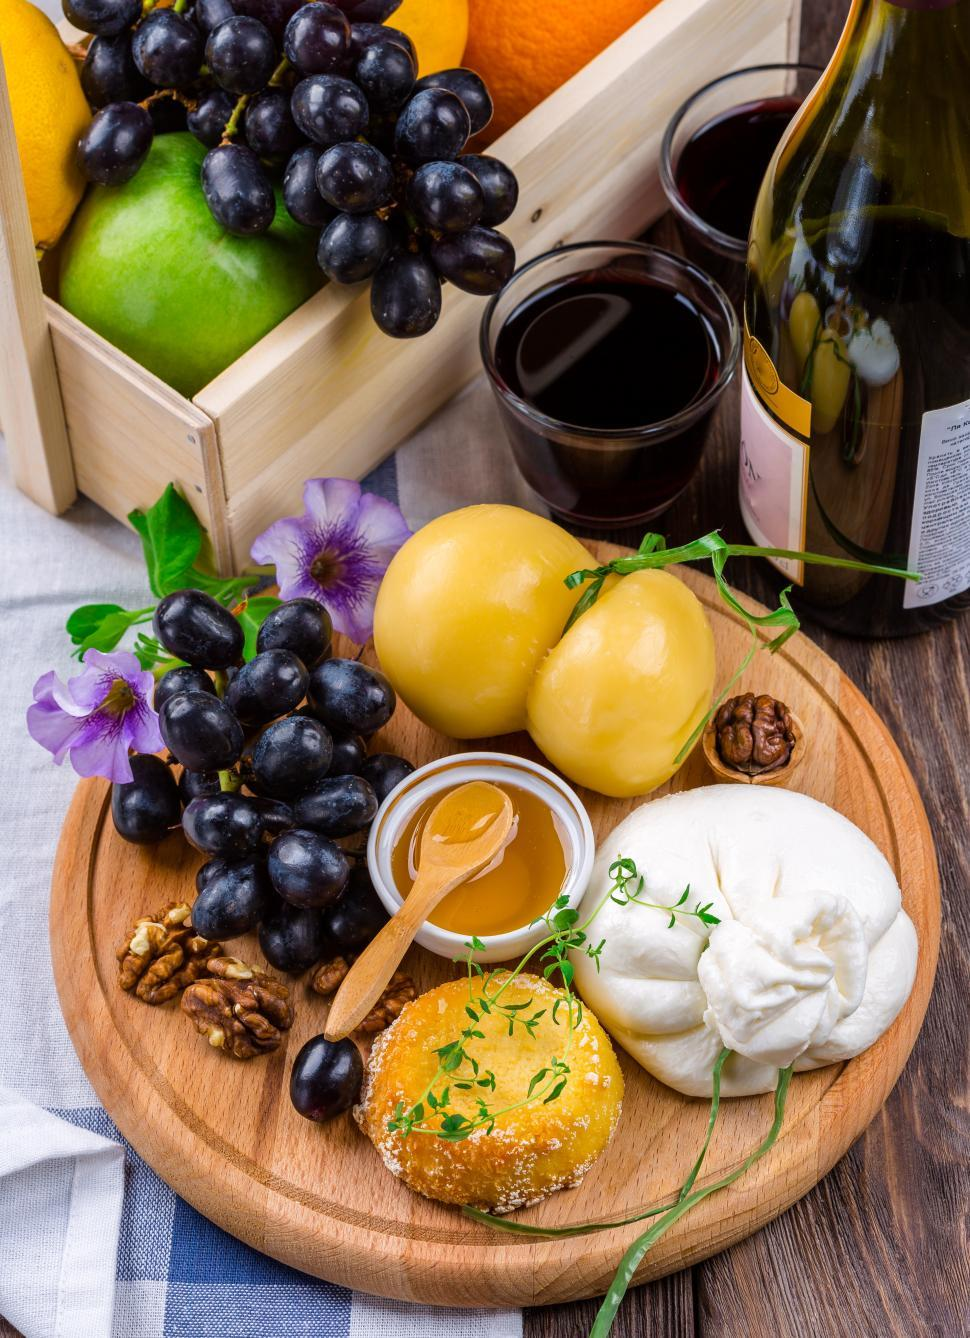 Download Free Stock Photo of Cheese Plate with black grapes on wooden board